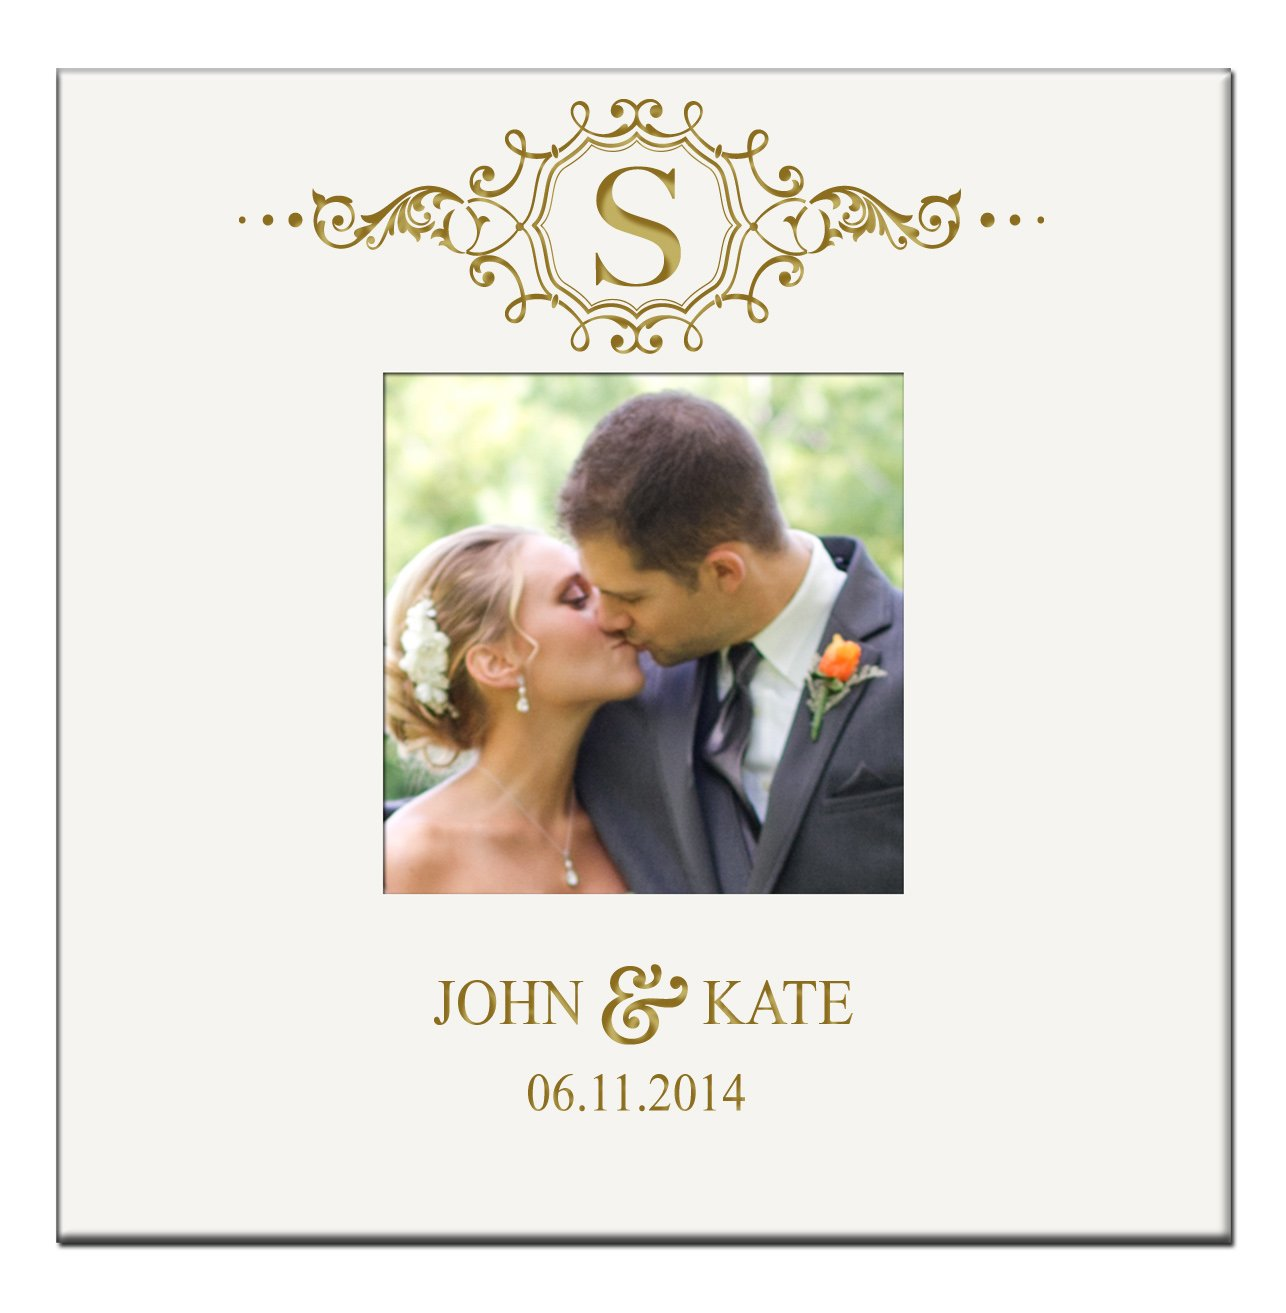 Personalized Wedding Anniversary Gifts Photo Album Book with Initial Holds 200 4x6 Photo LifeSong Milestones 60301